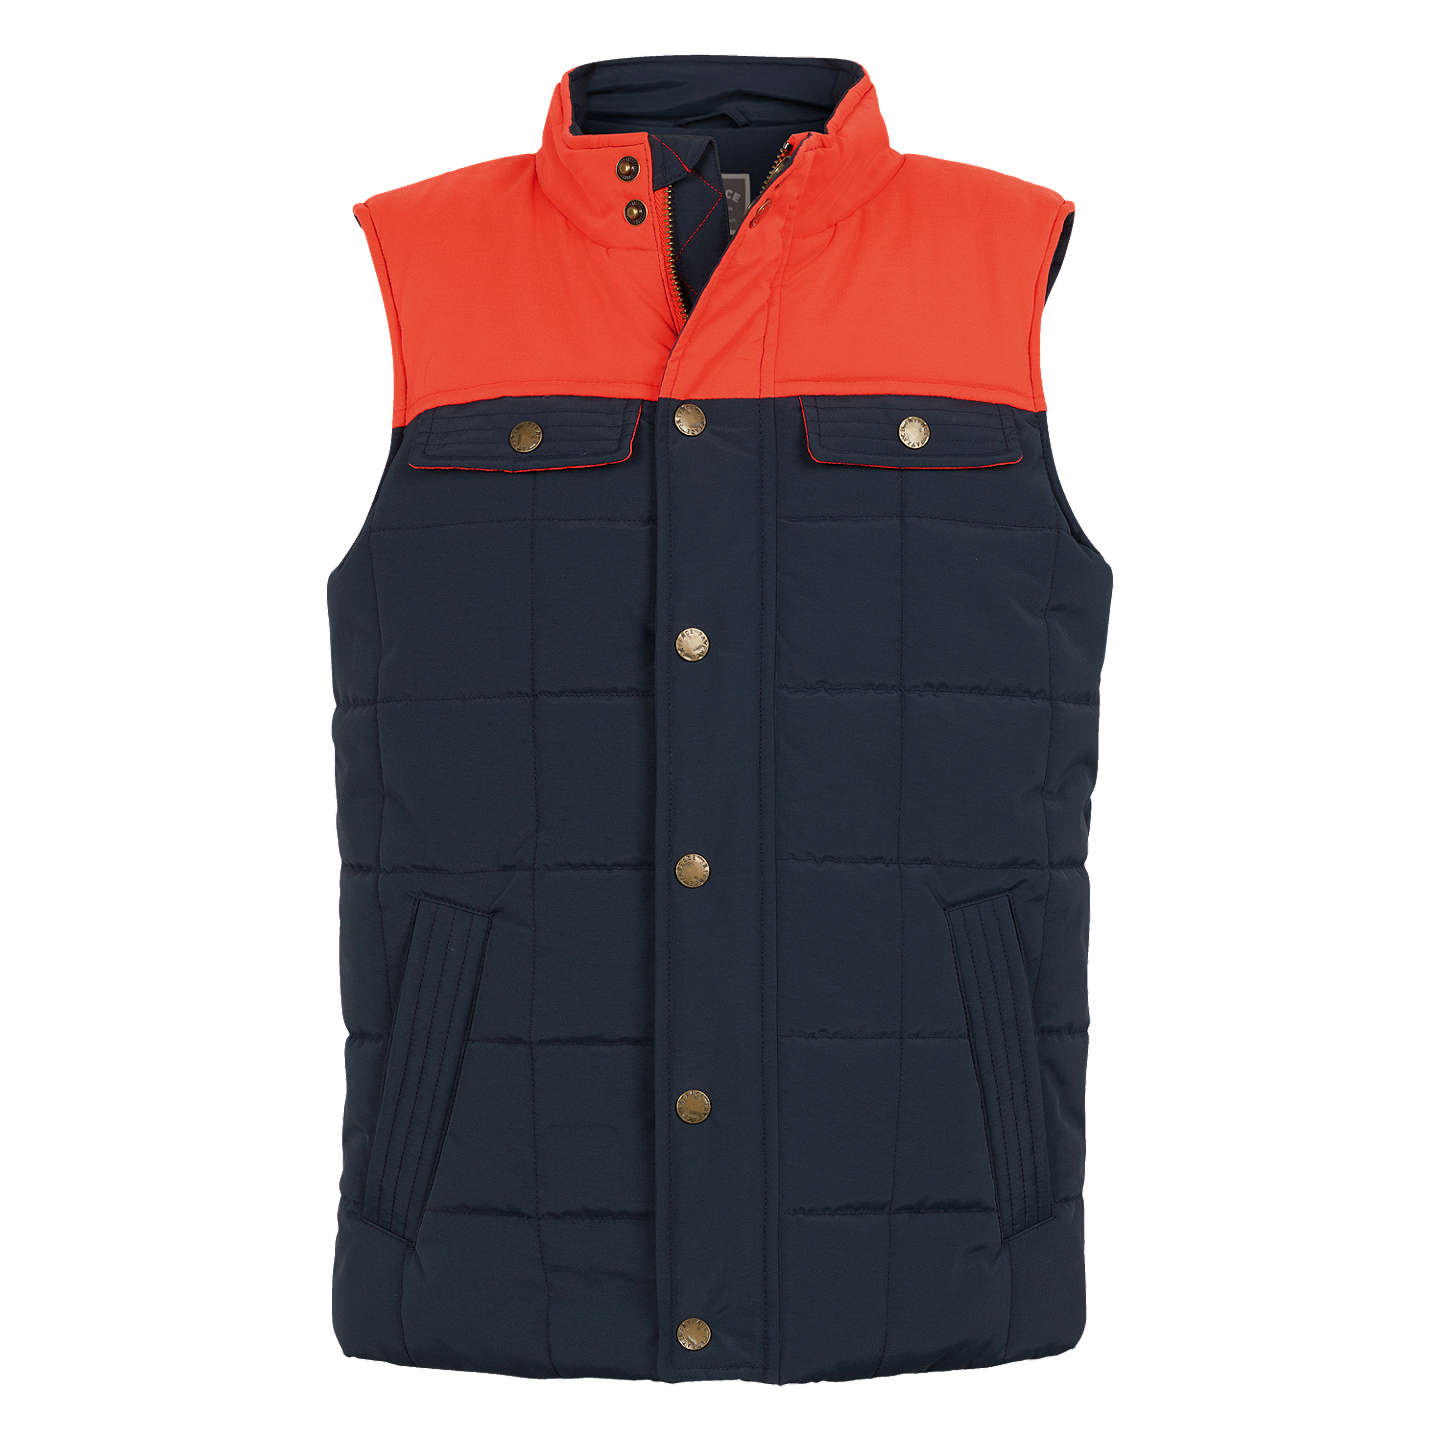 Discount Professional New Arrival Boys Alfie Gilet Fat Face For Cheap Price Sale Pictures e7vo3h